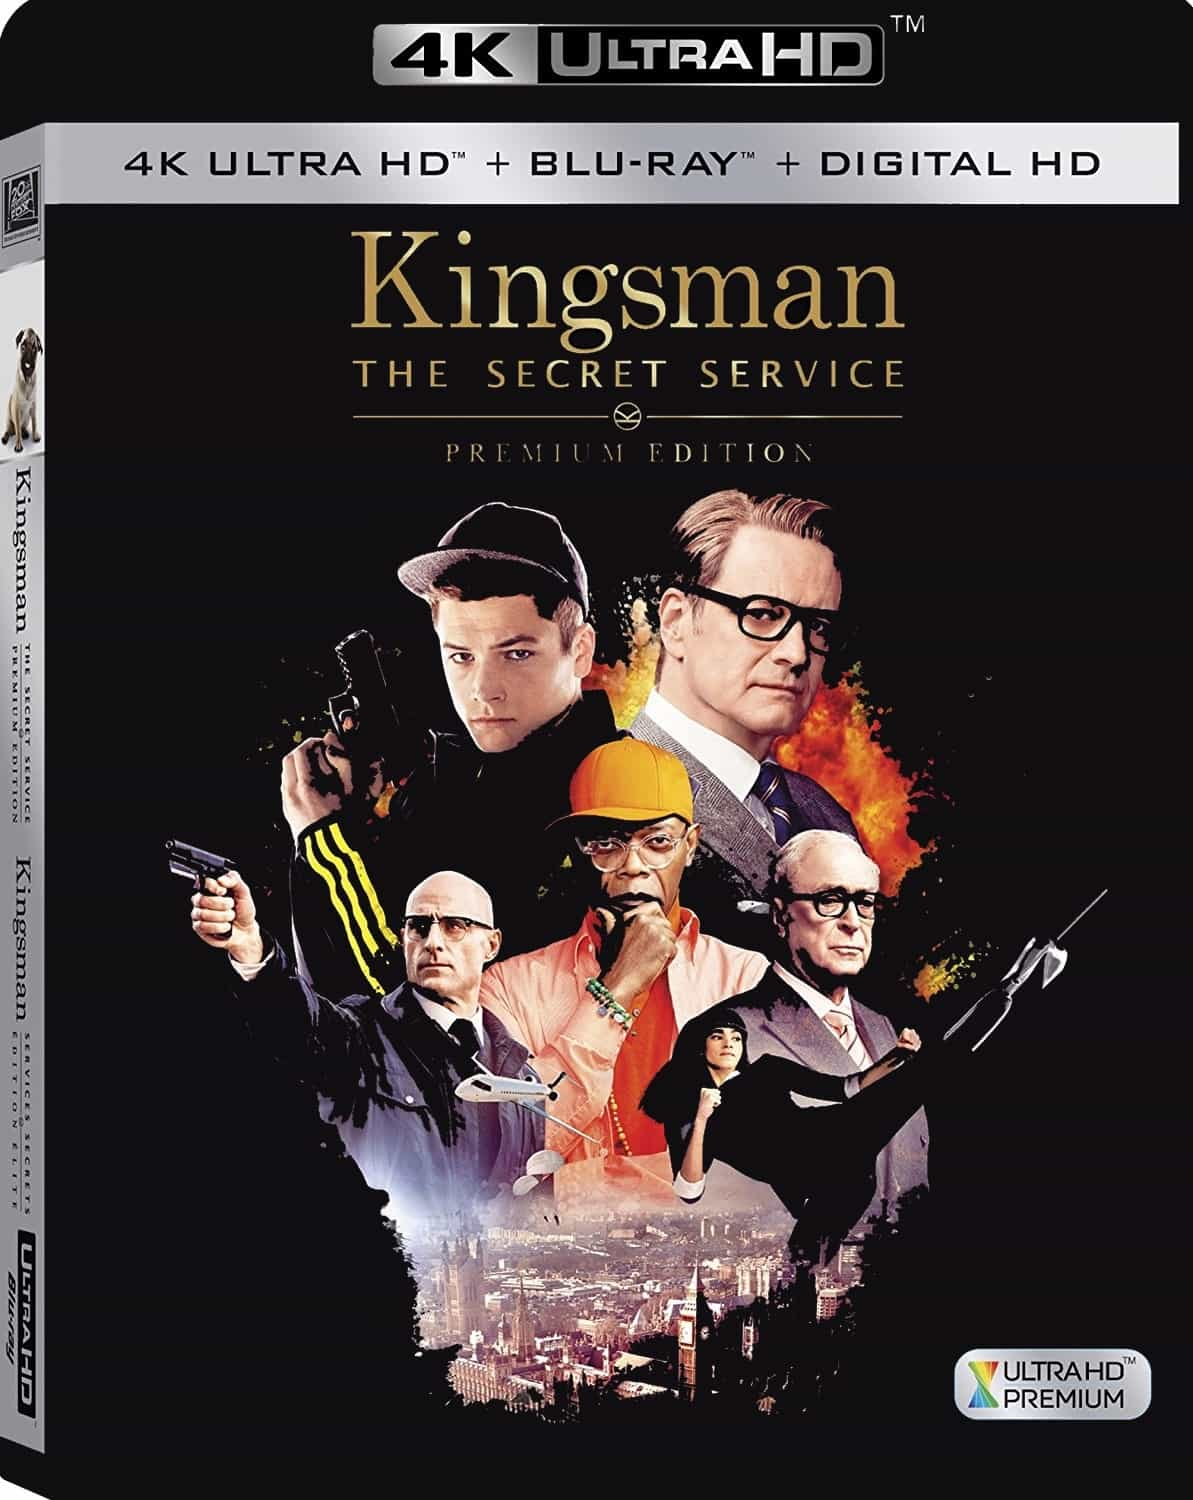 Kingsman: The Secret Service 4K 2014 Ultra HD 2160p